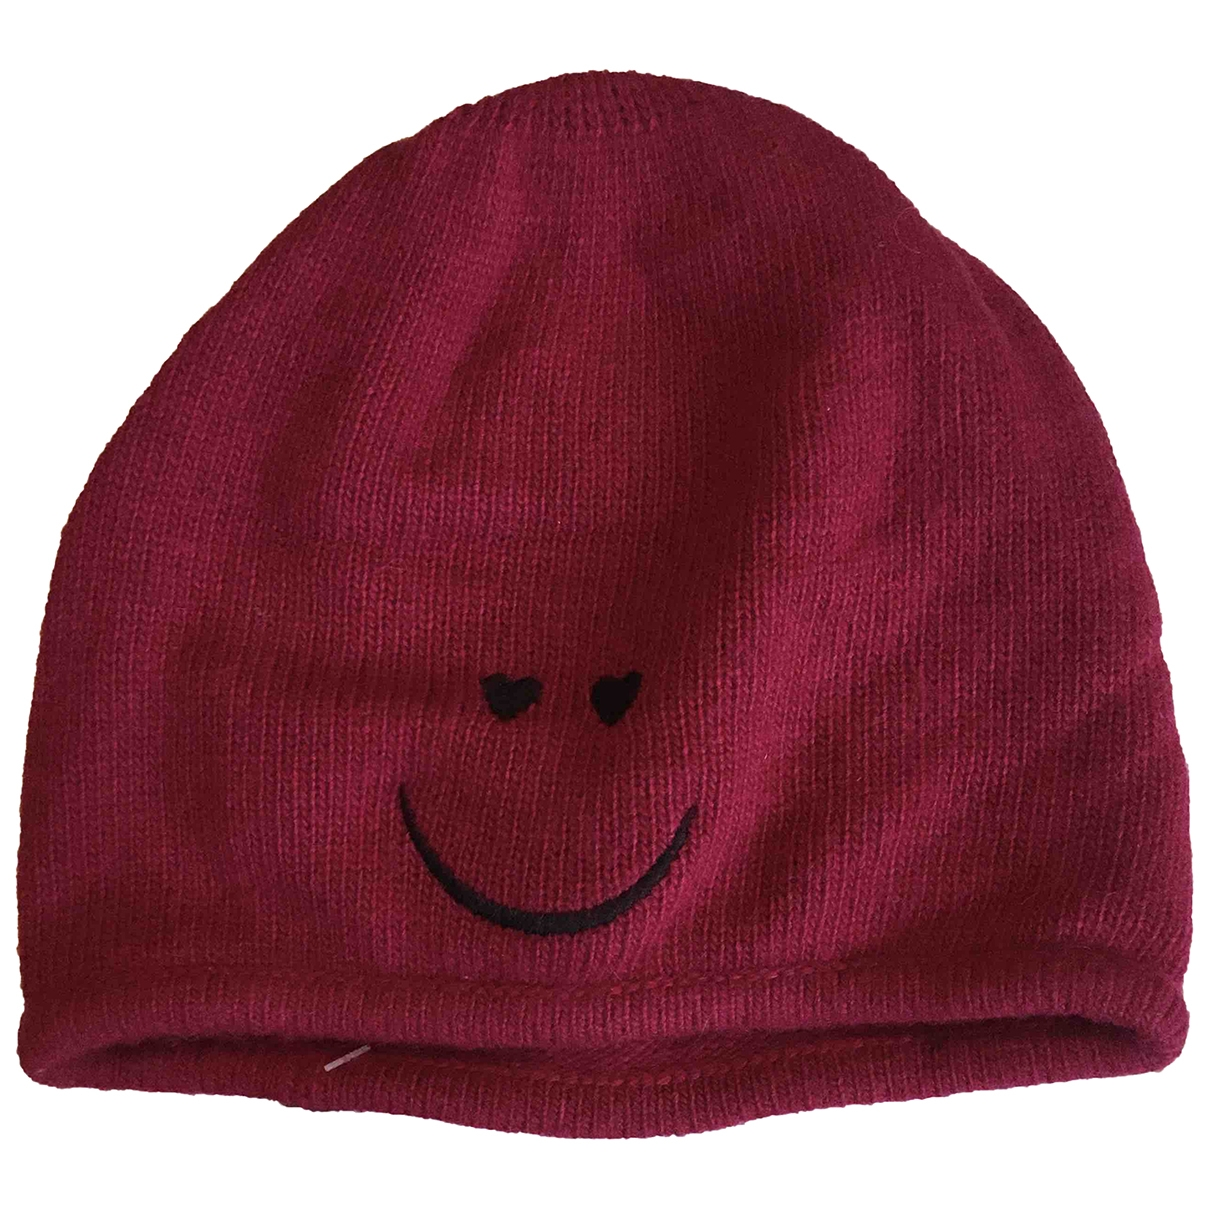 Moschino Cheap And Chic \N Red Wool hat for Women S International